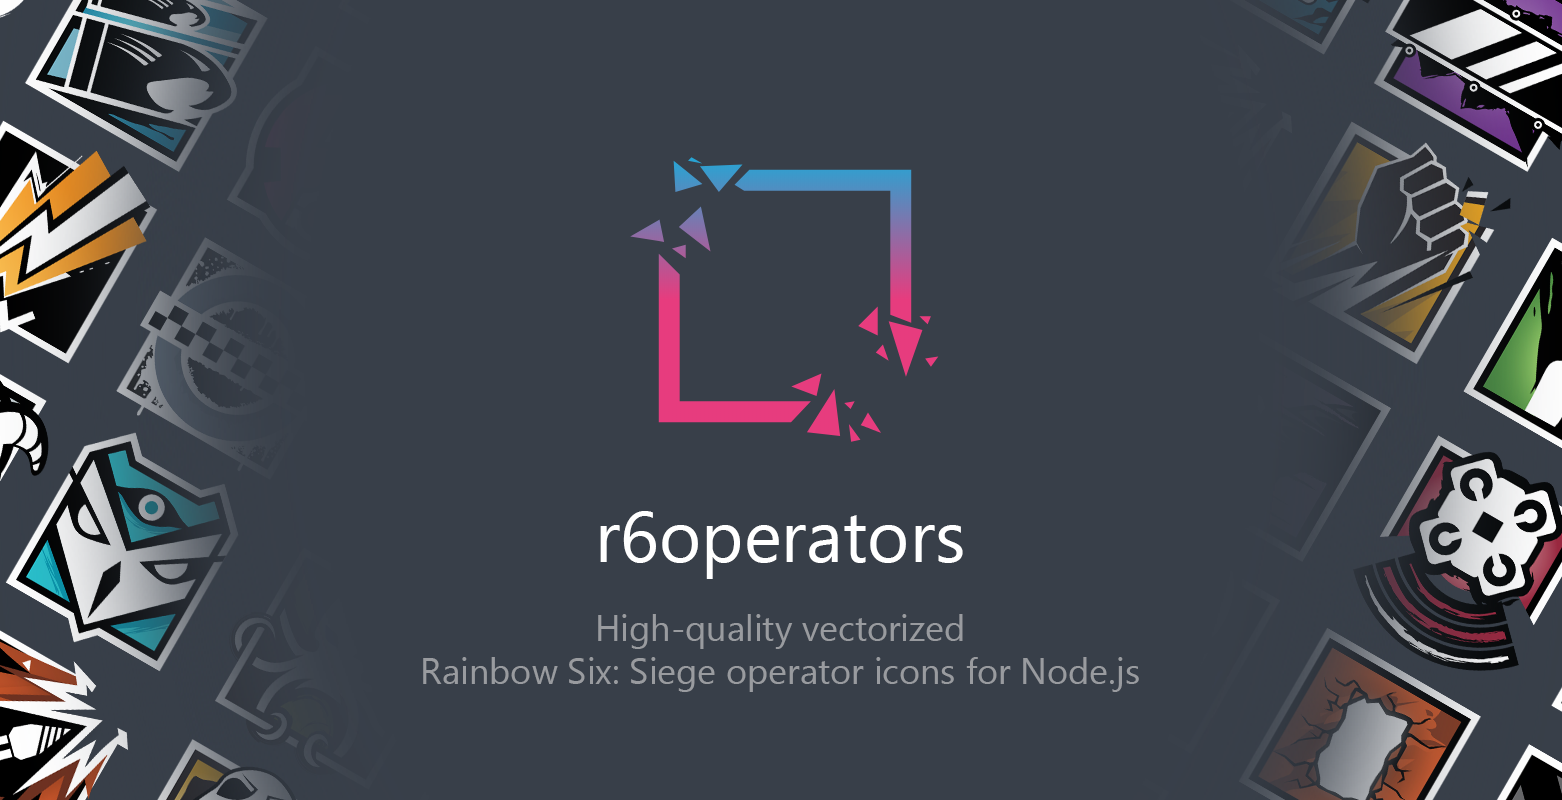 GitHub - marcopixel/r6-operatoricons: r6-operatoricons is a